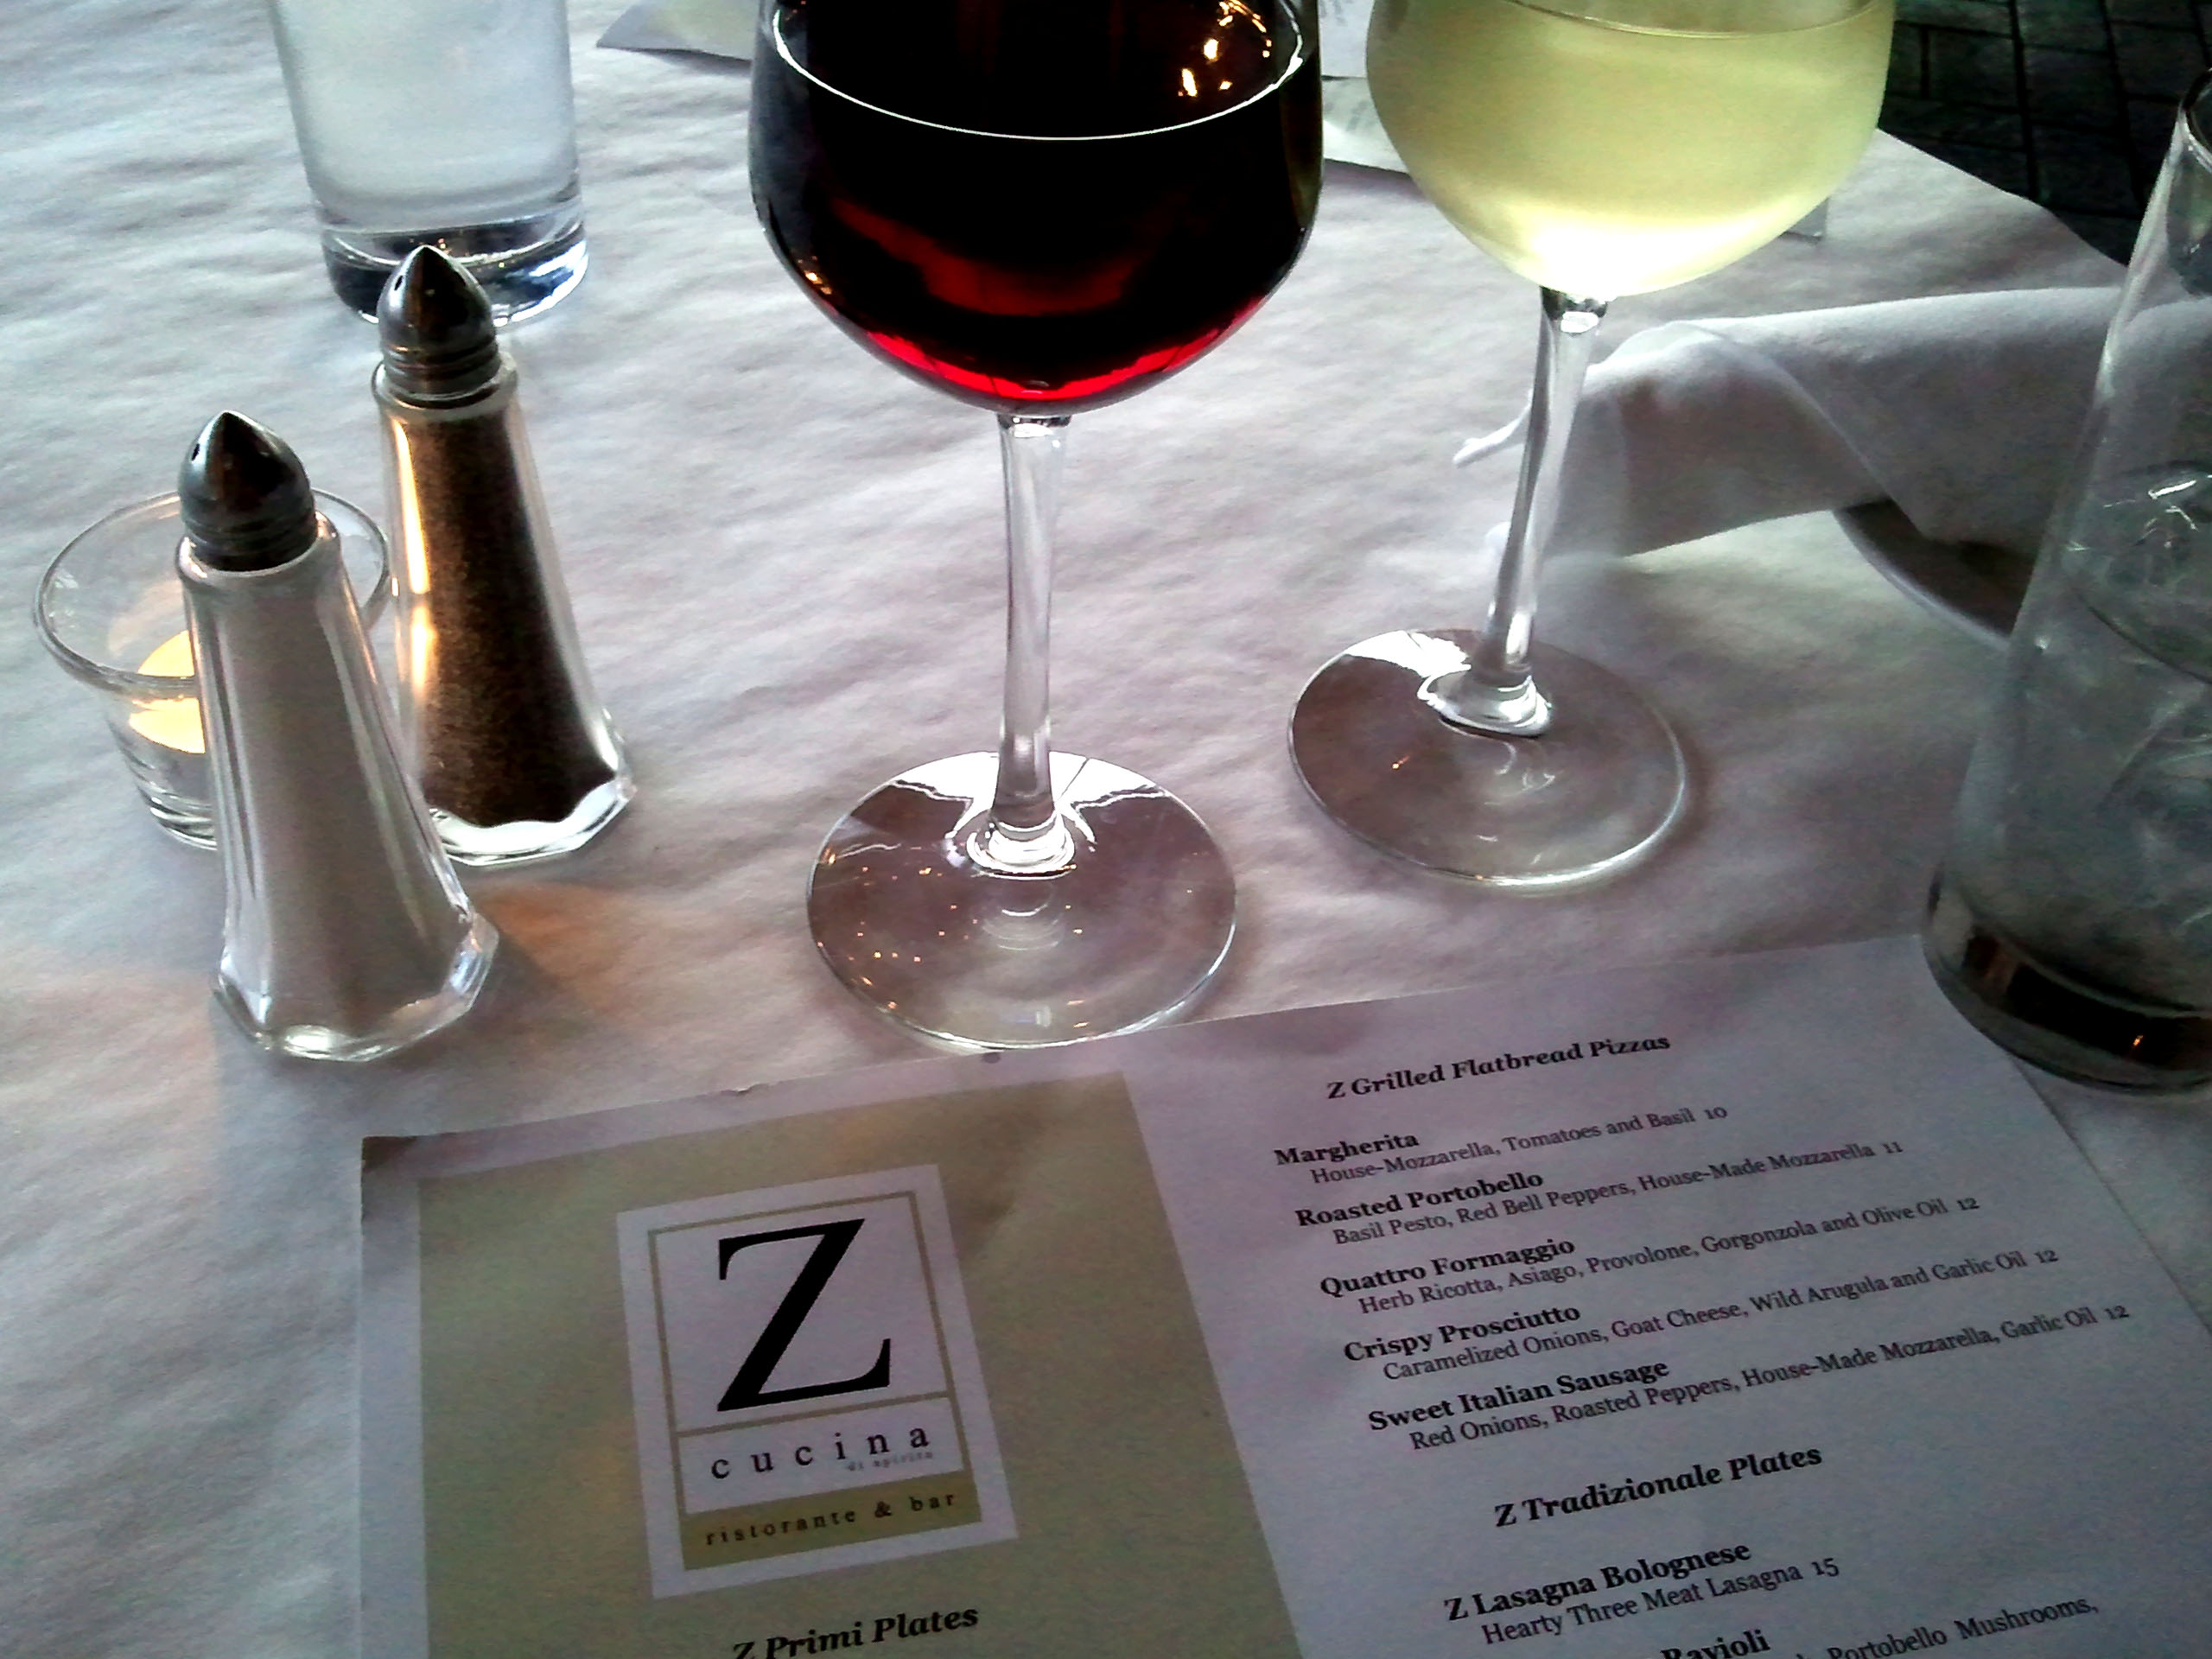 birthday dinner at z cucina